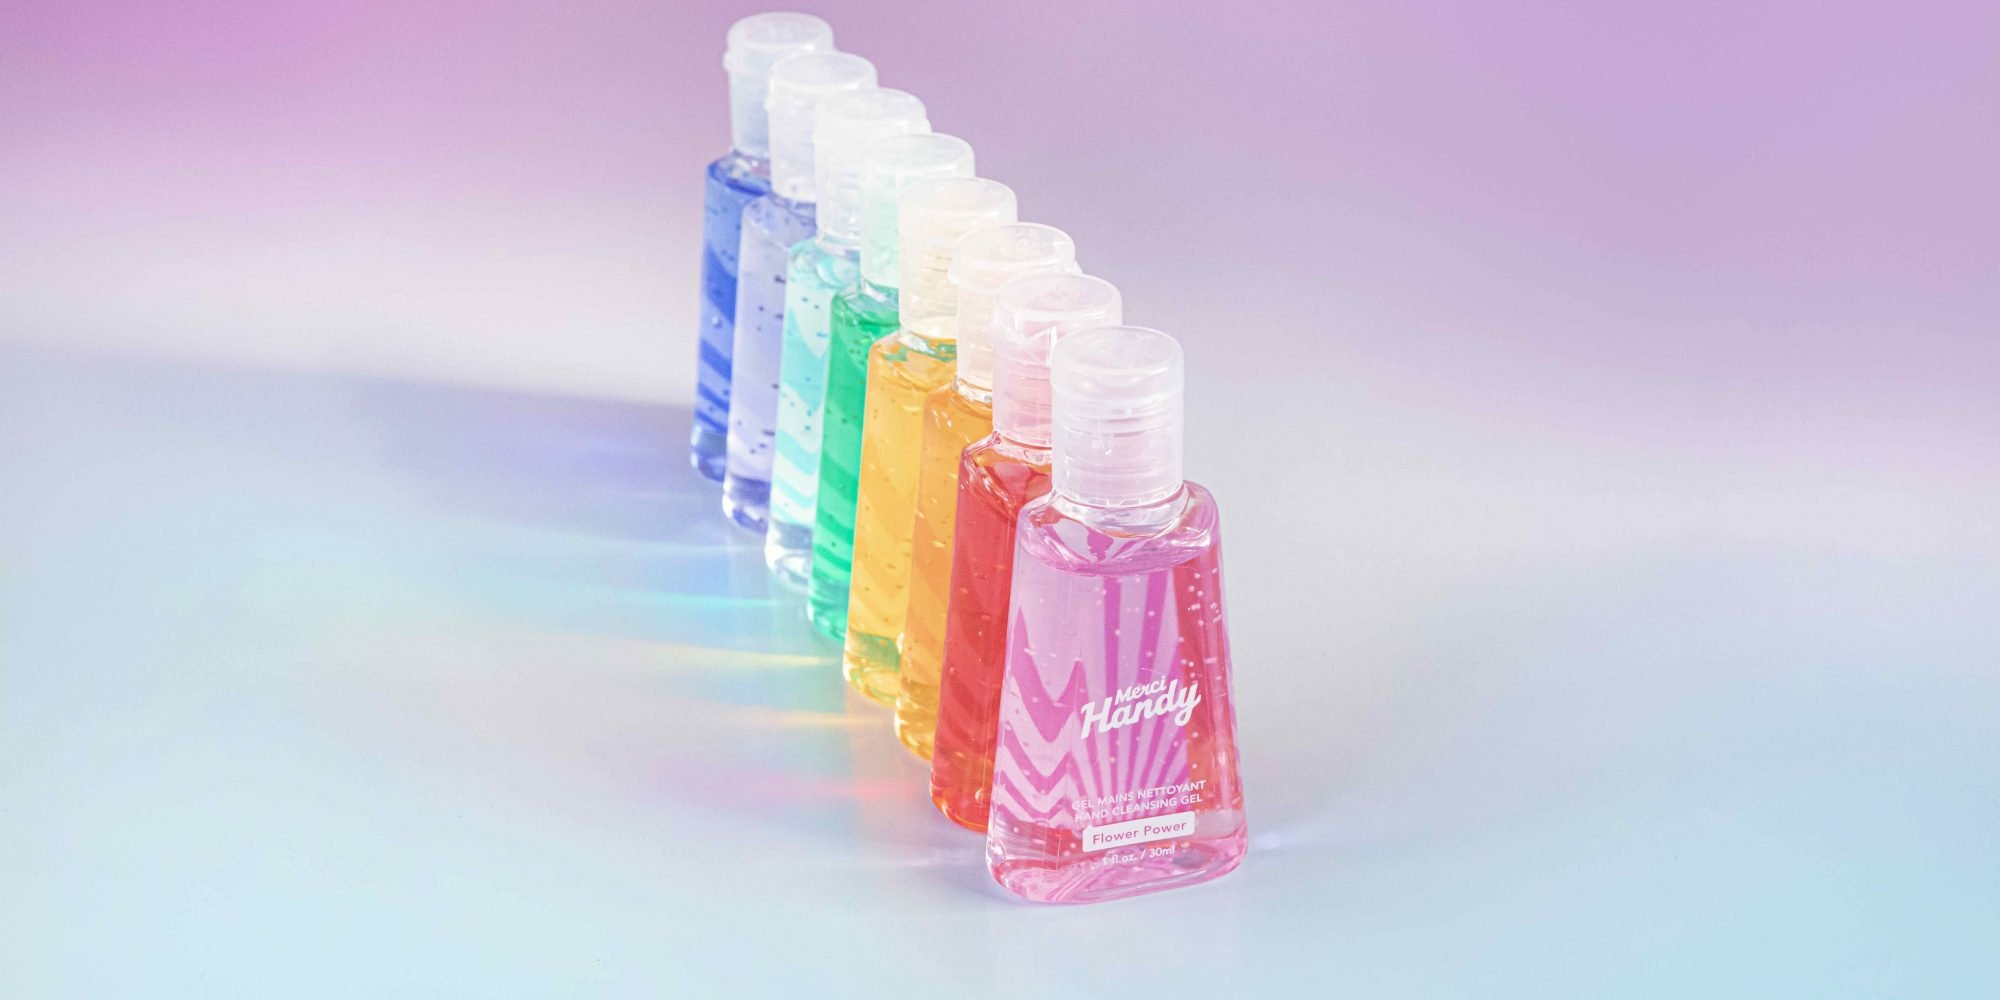 Experiencing A Current Surge, Indie Hand Sanitizer Brands Take A Long-Term Perspective